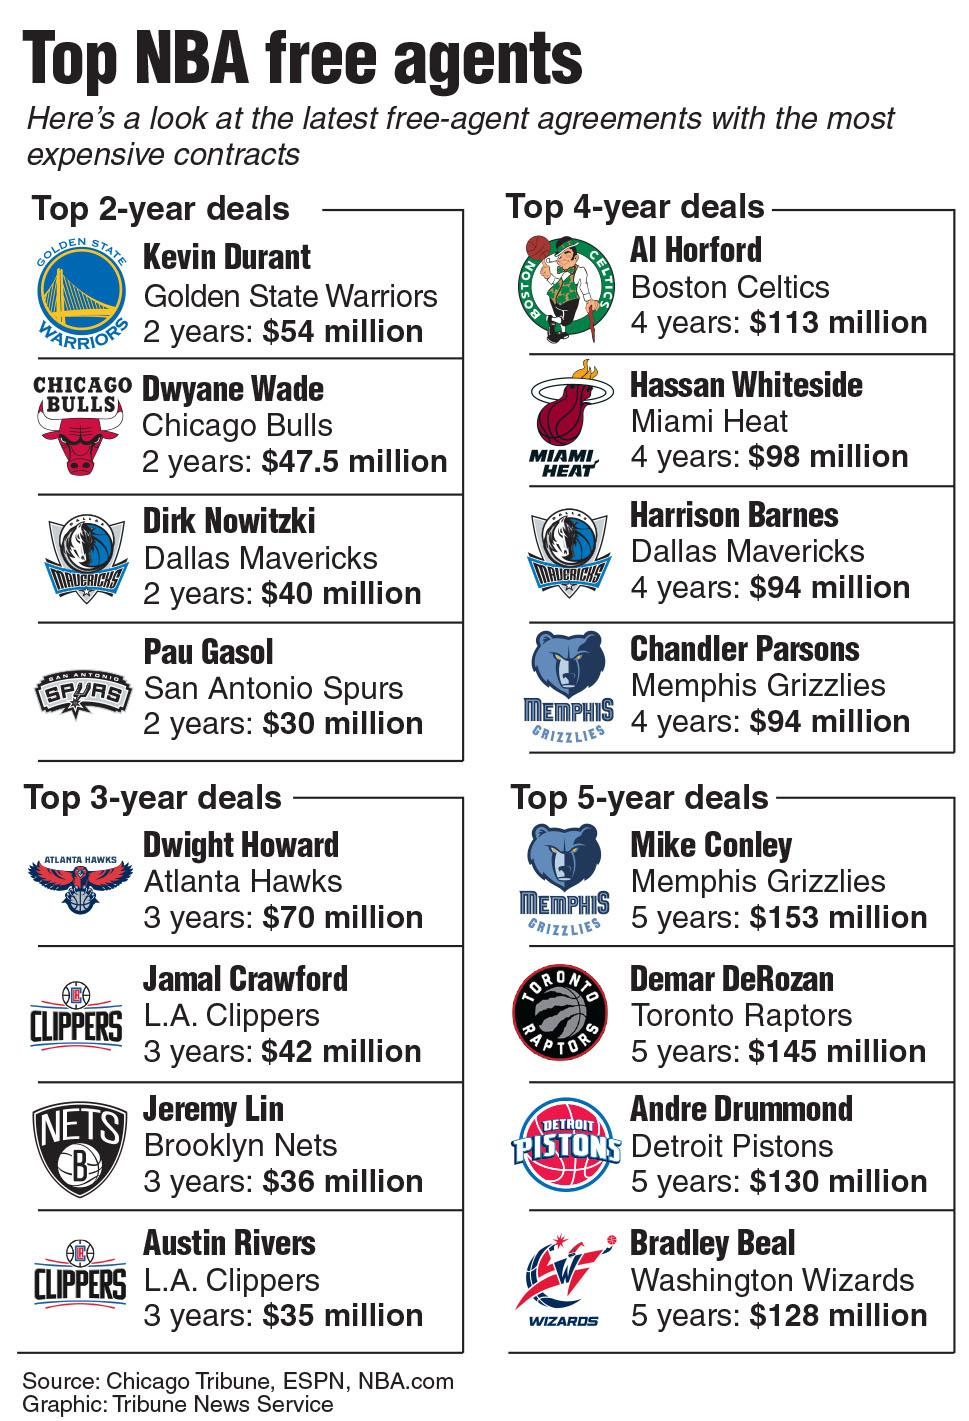 A list of the top NBA free-agent agreements with the most expensive contracts. Update shows Dwyane Wade's $47.5 million agreement for 2 years with the Chicago Bulls. TNS 2016